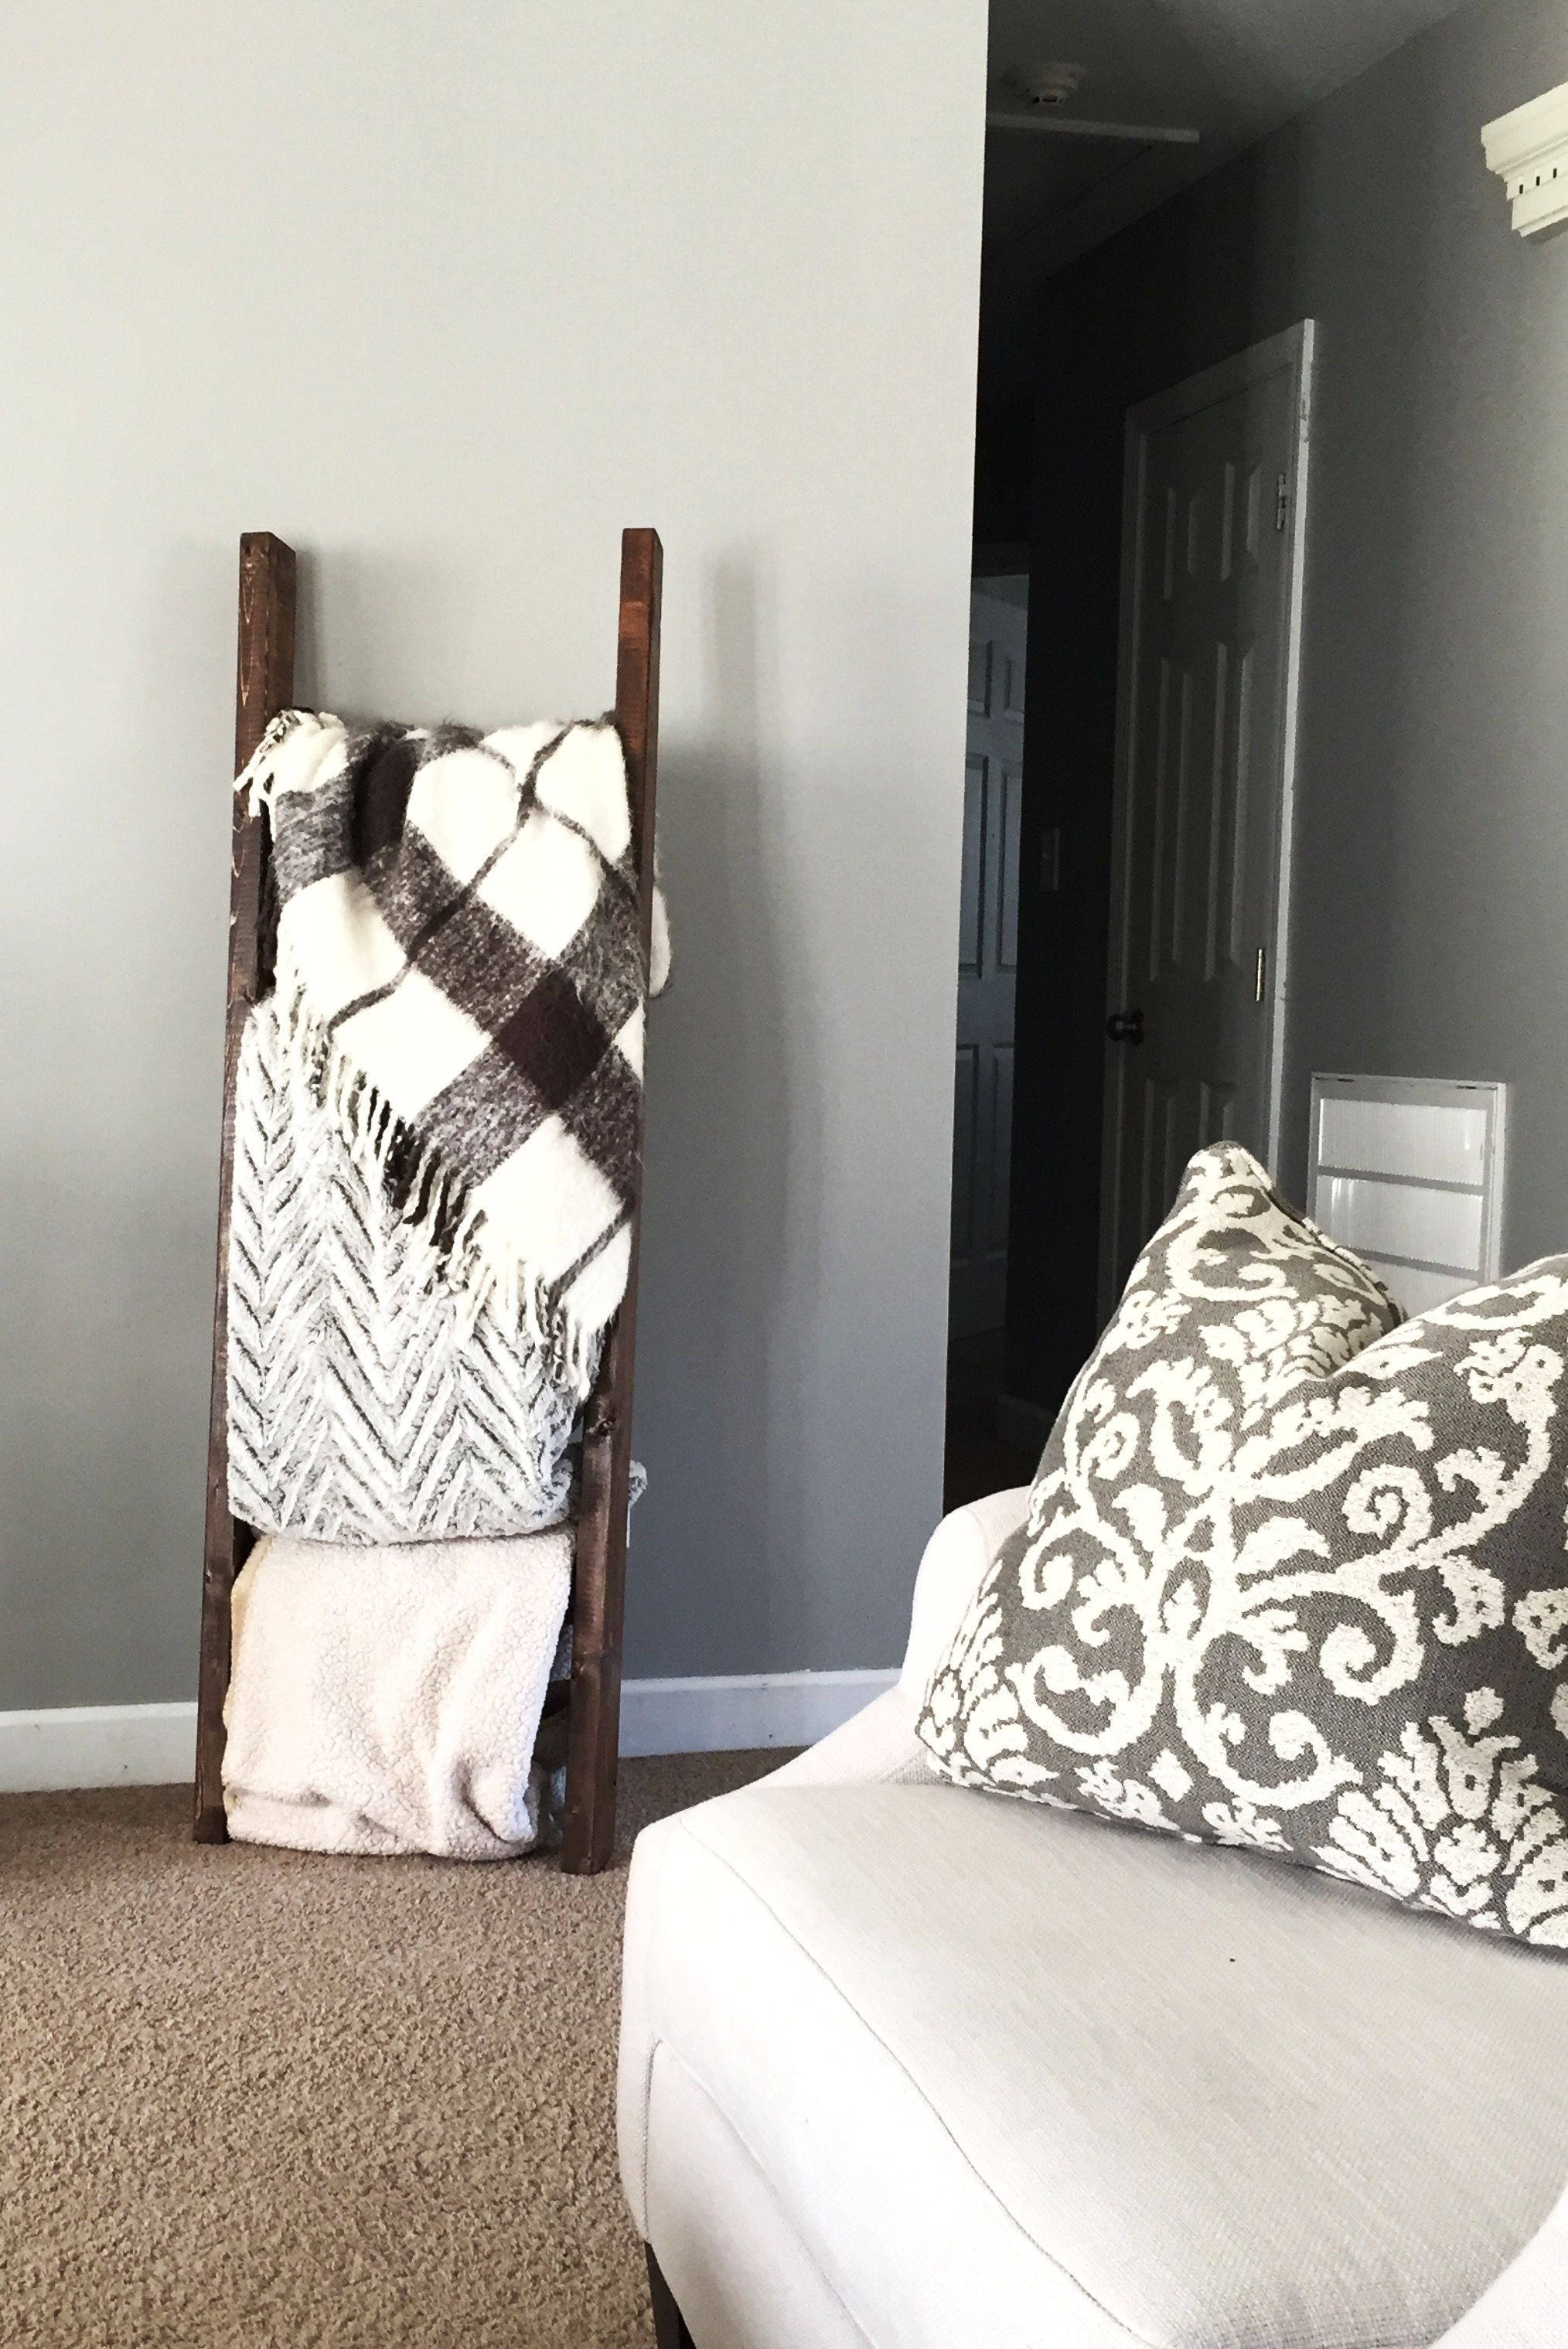 A Blanket Ladder Was The Perfect Way To Fill In Some Empty Wall Space In The Living Room Blanke Living Room Space Filler Living Room Empty Living Room Spaces